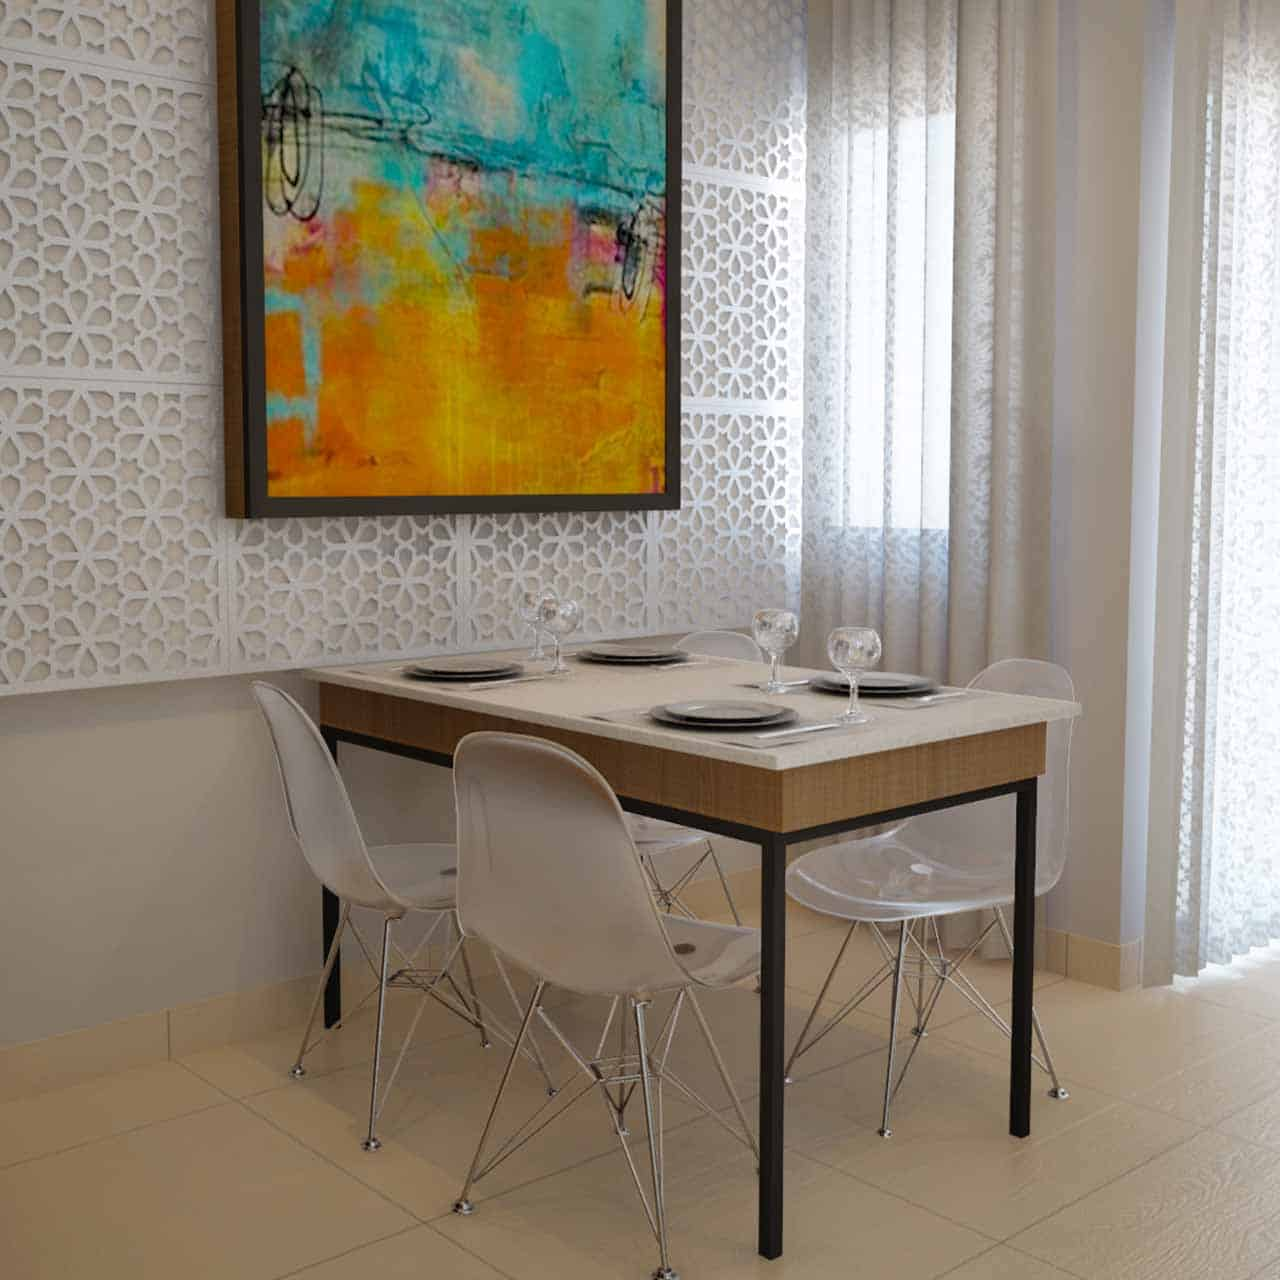 Modern dining table design which makes a minimalistic dining room the perfect place to enjoy a meal in a dining room